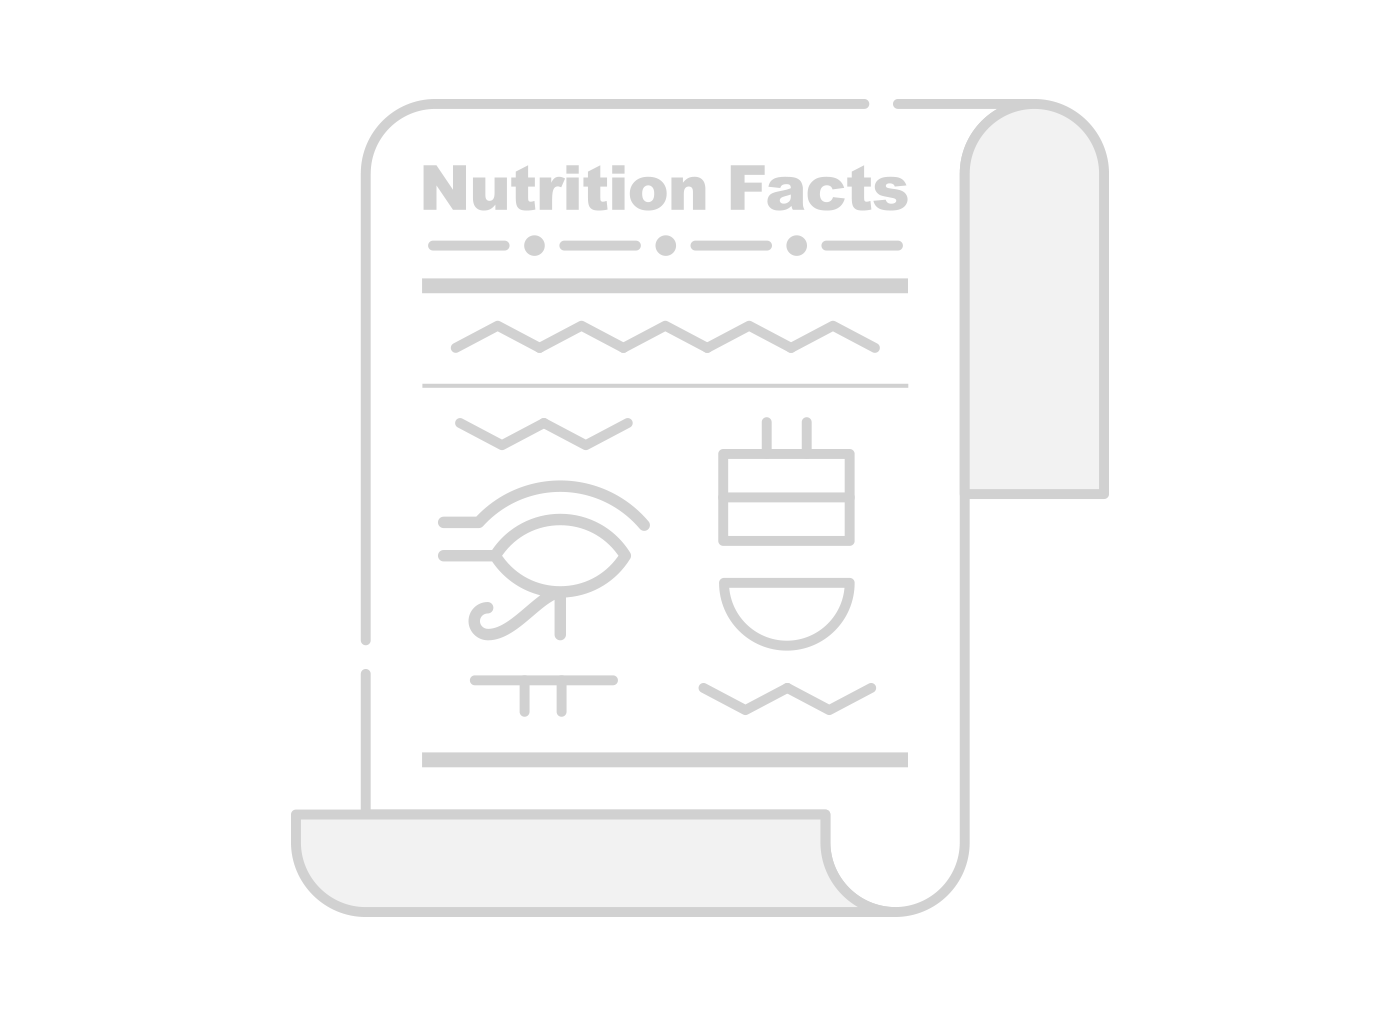 An illustration of a nutrition label in hieroglyphics, showing that nutrition labels can be extremely confusing